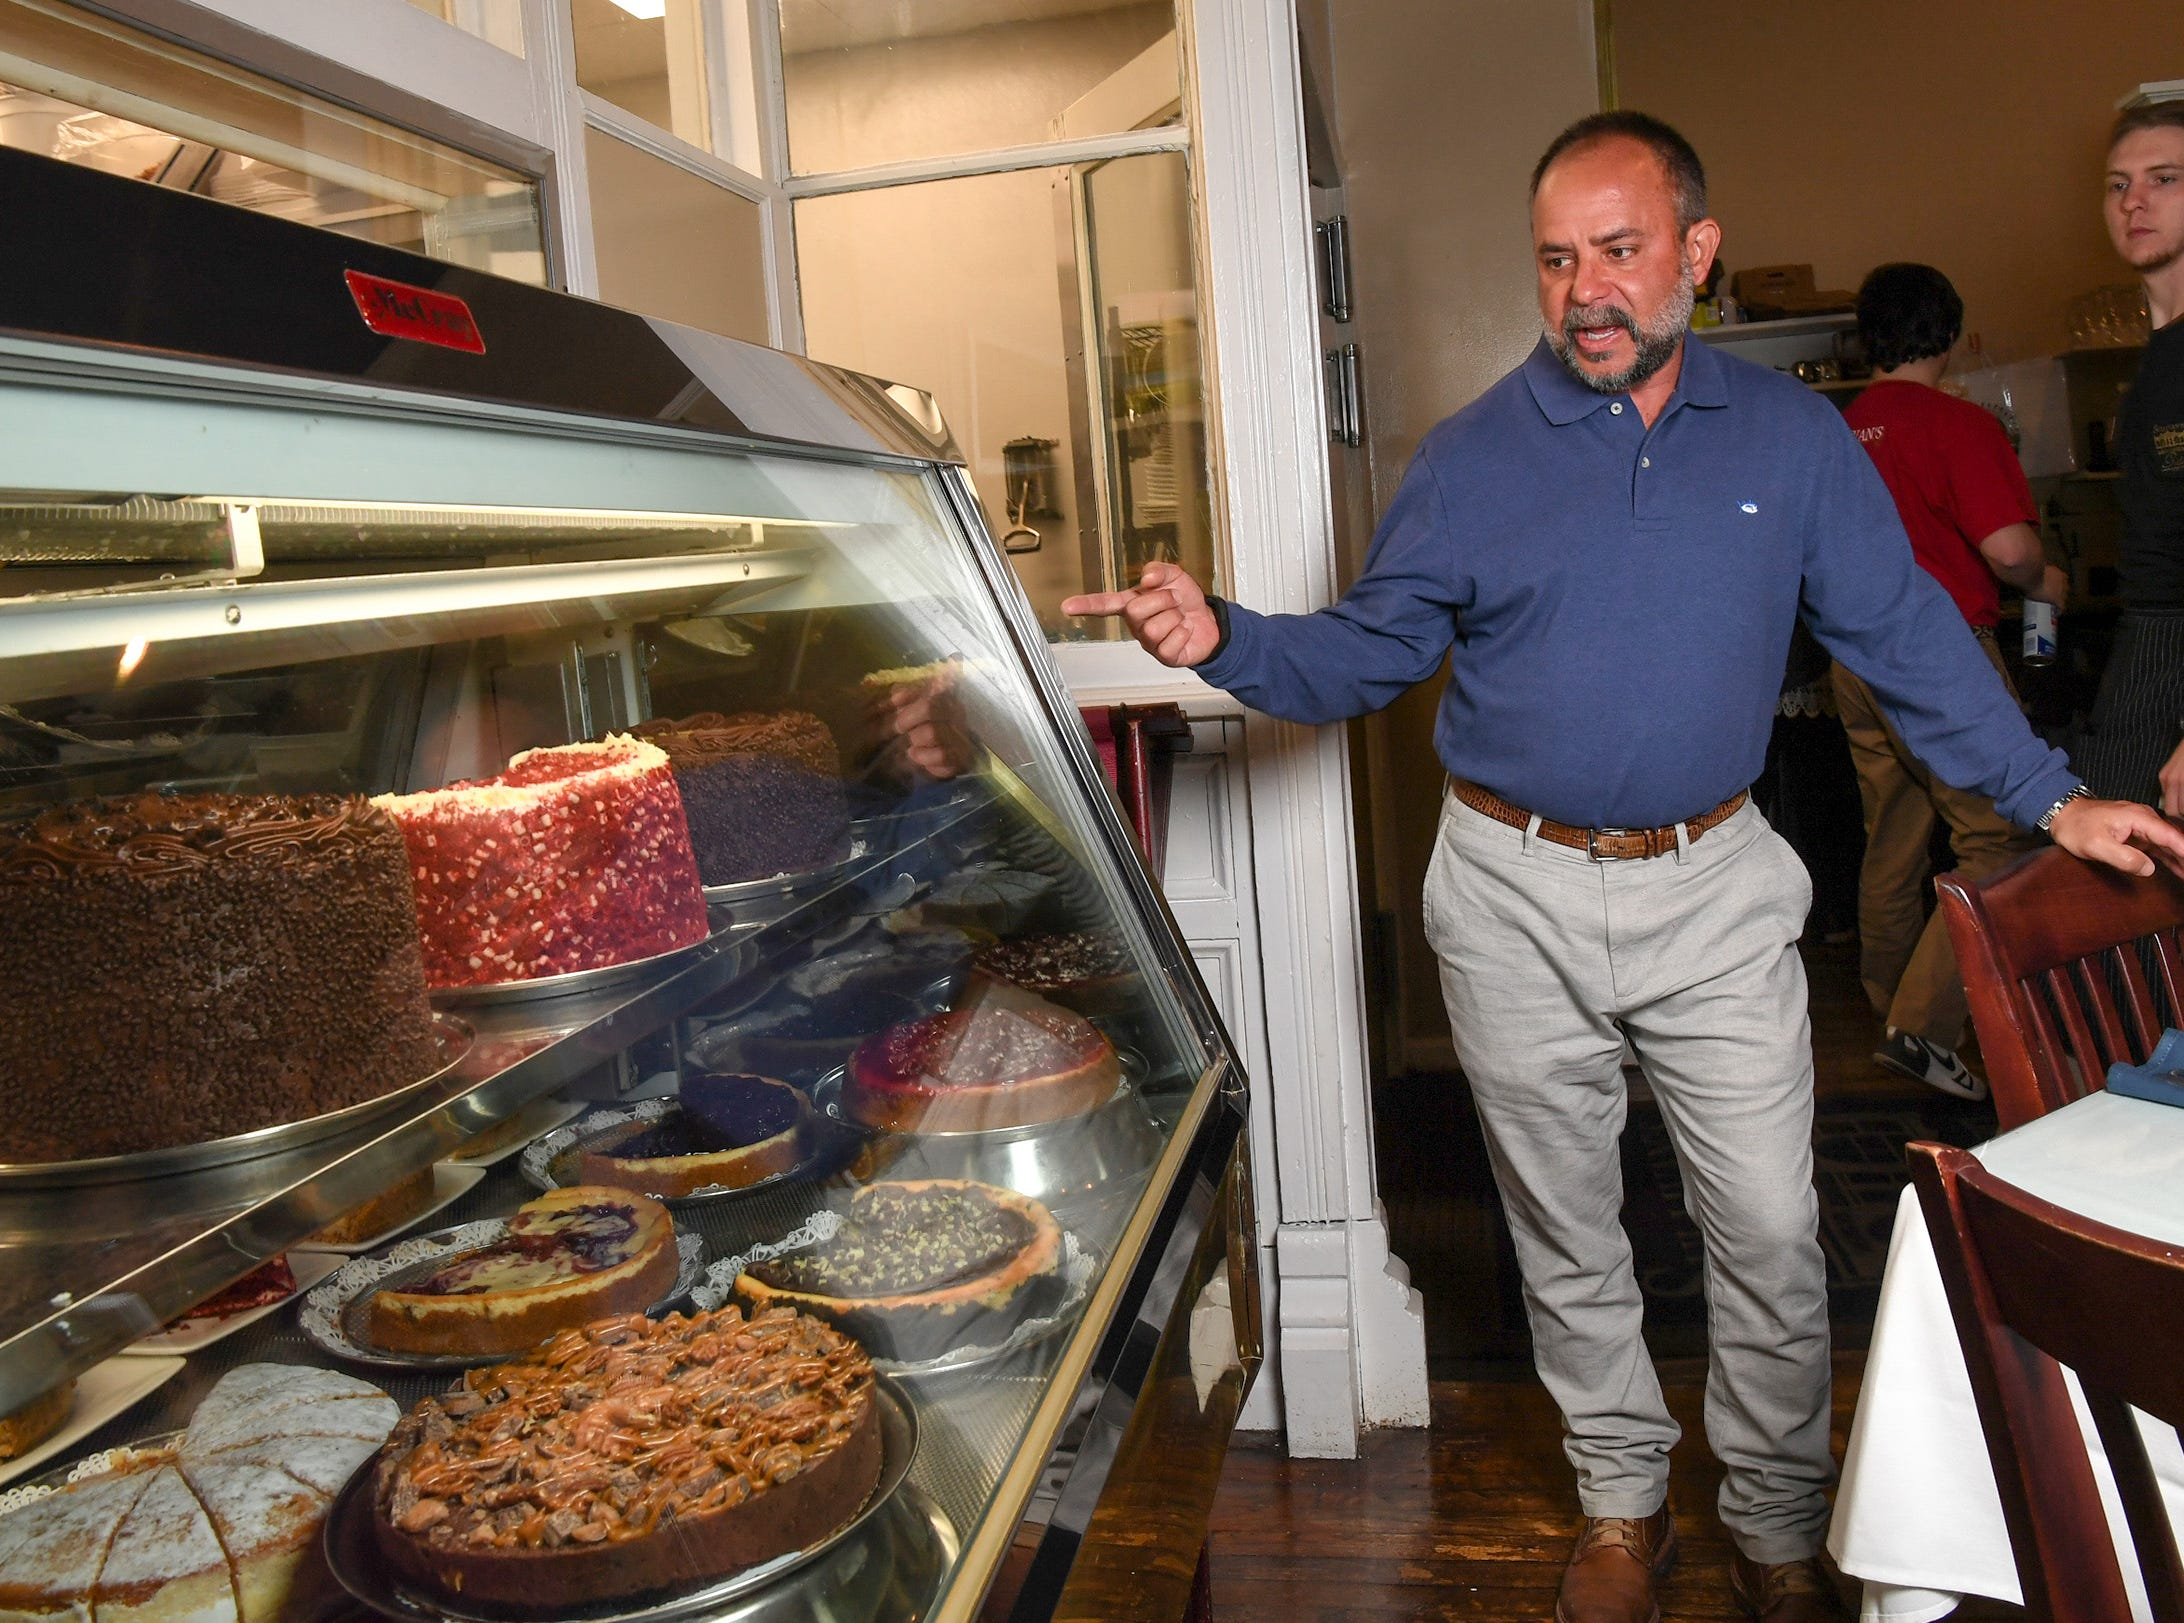 Bill Nickas, co-owner of Sullivan's Metropolitan Grill in Anderson, looks at cheesecakes and cakes his wife Sabra Nickas makes and many love at the downtown Anderson restaurant.